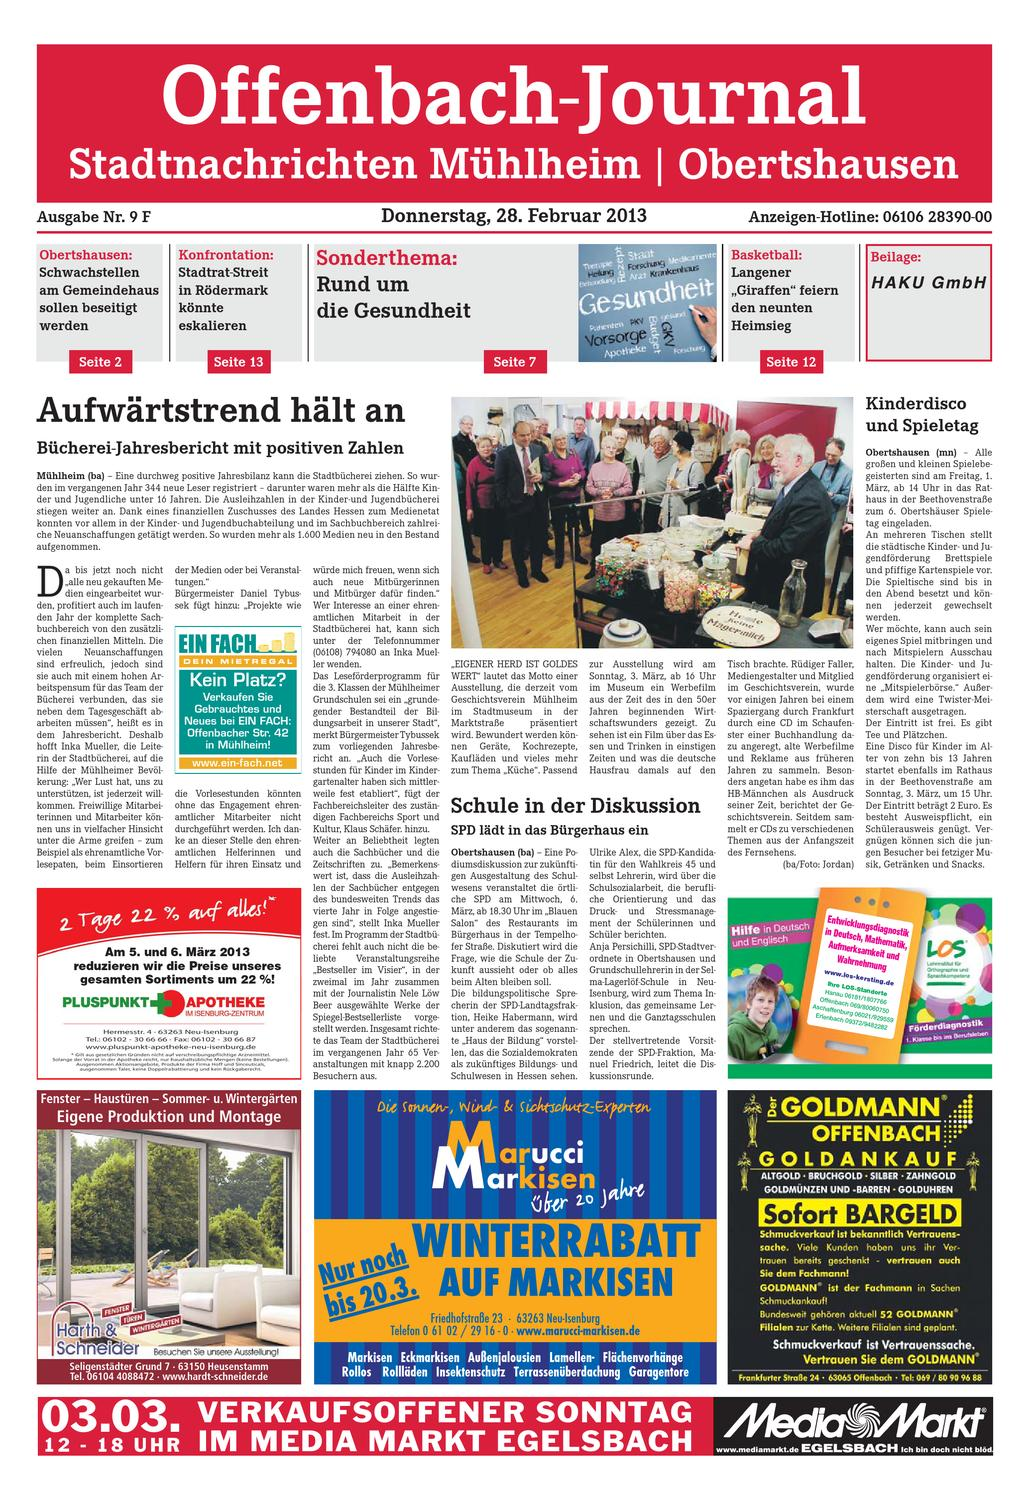 Dz Online 009 13 F By Dreieich Zeitung Offenbach Journal Issuu